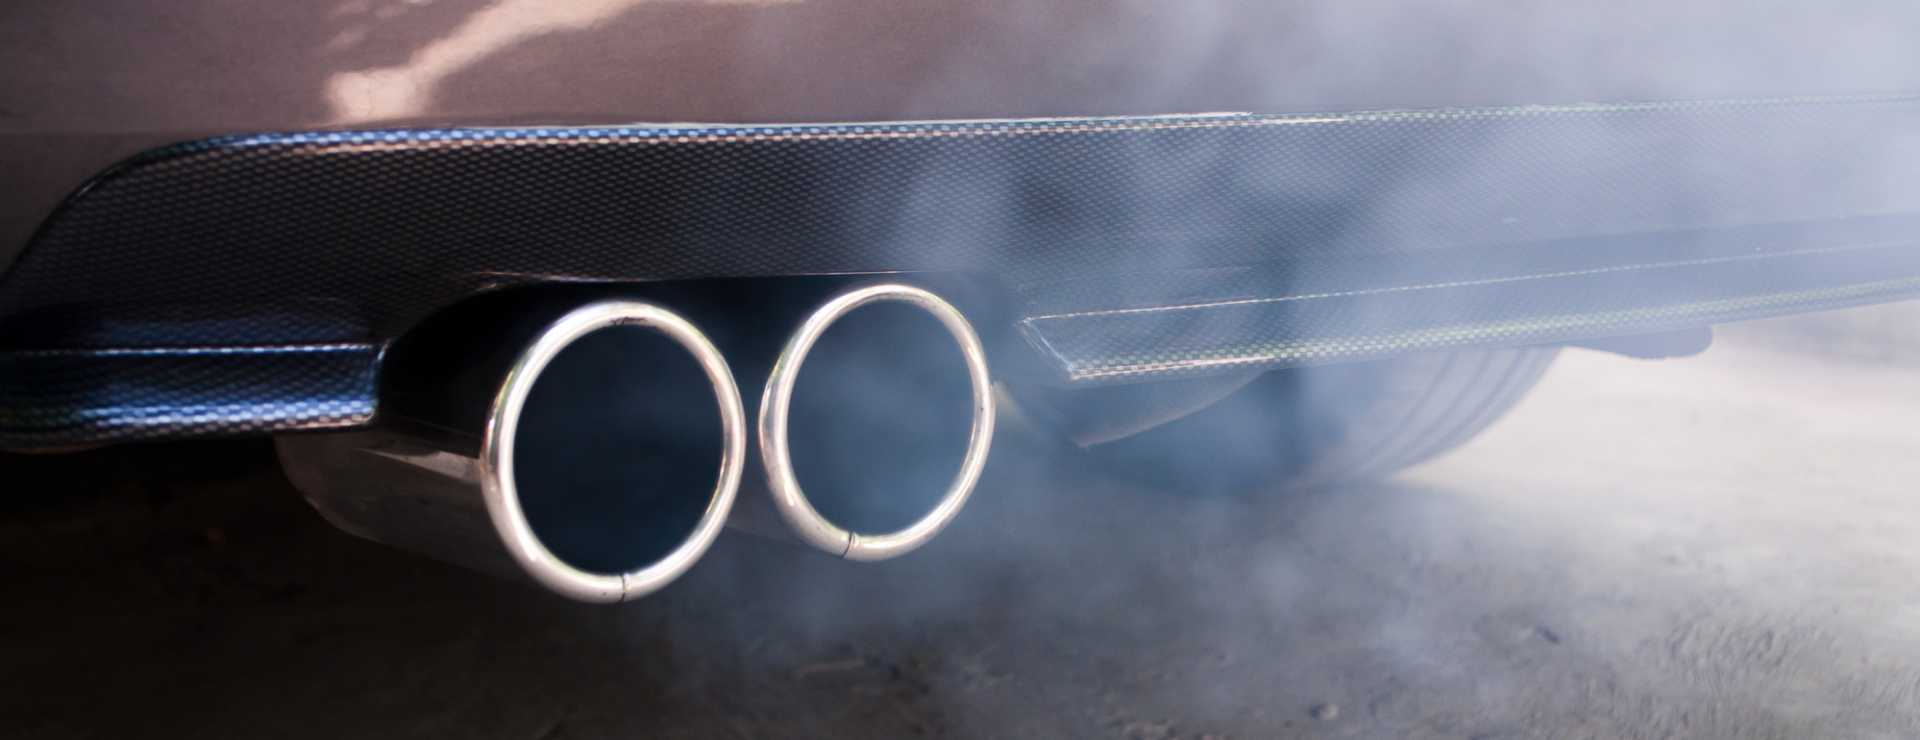 Car exhaust pipe emissions - image courtesy of Depositphotos.